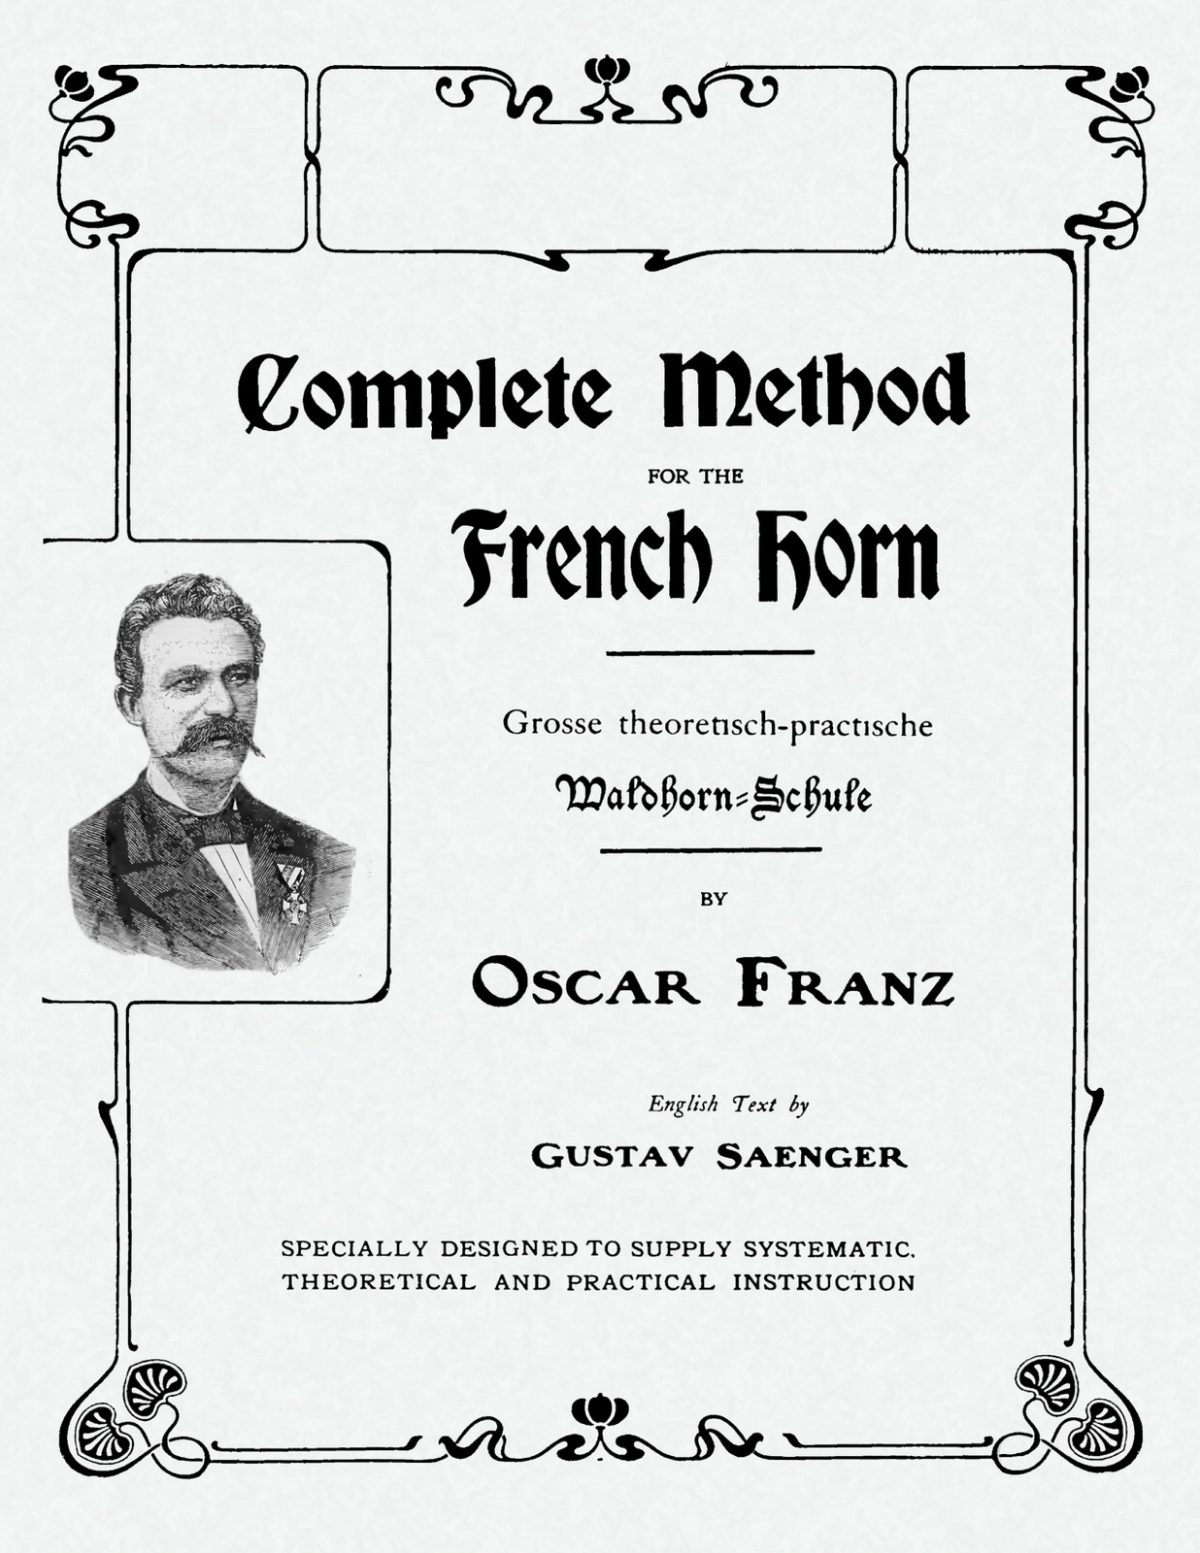 Franz, Oscar, Complete method for the French Horn-p001